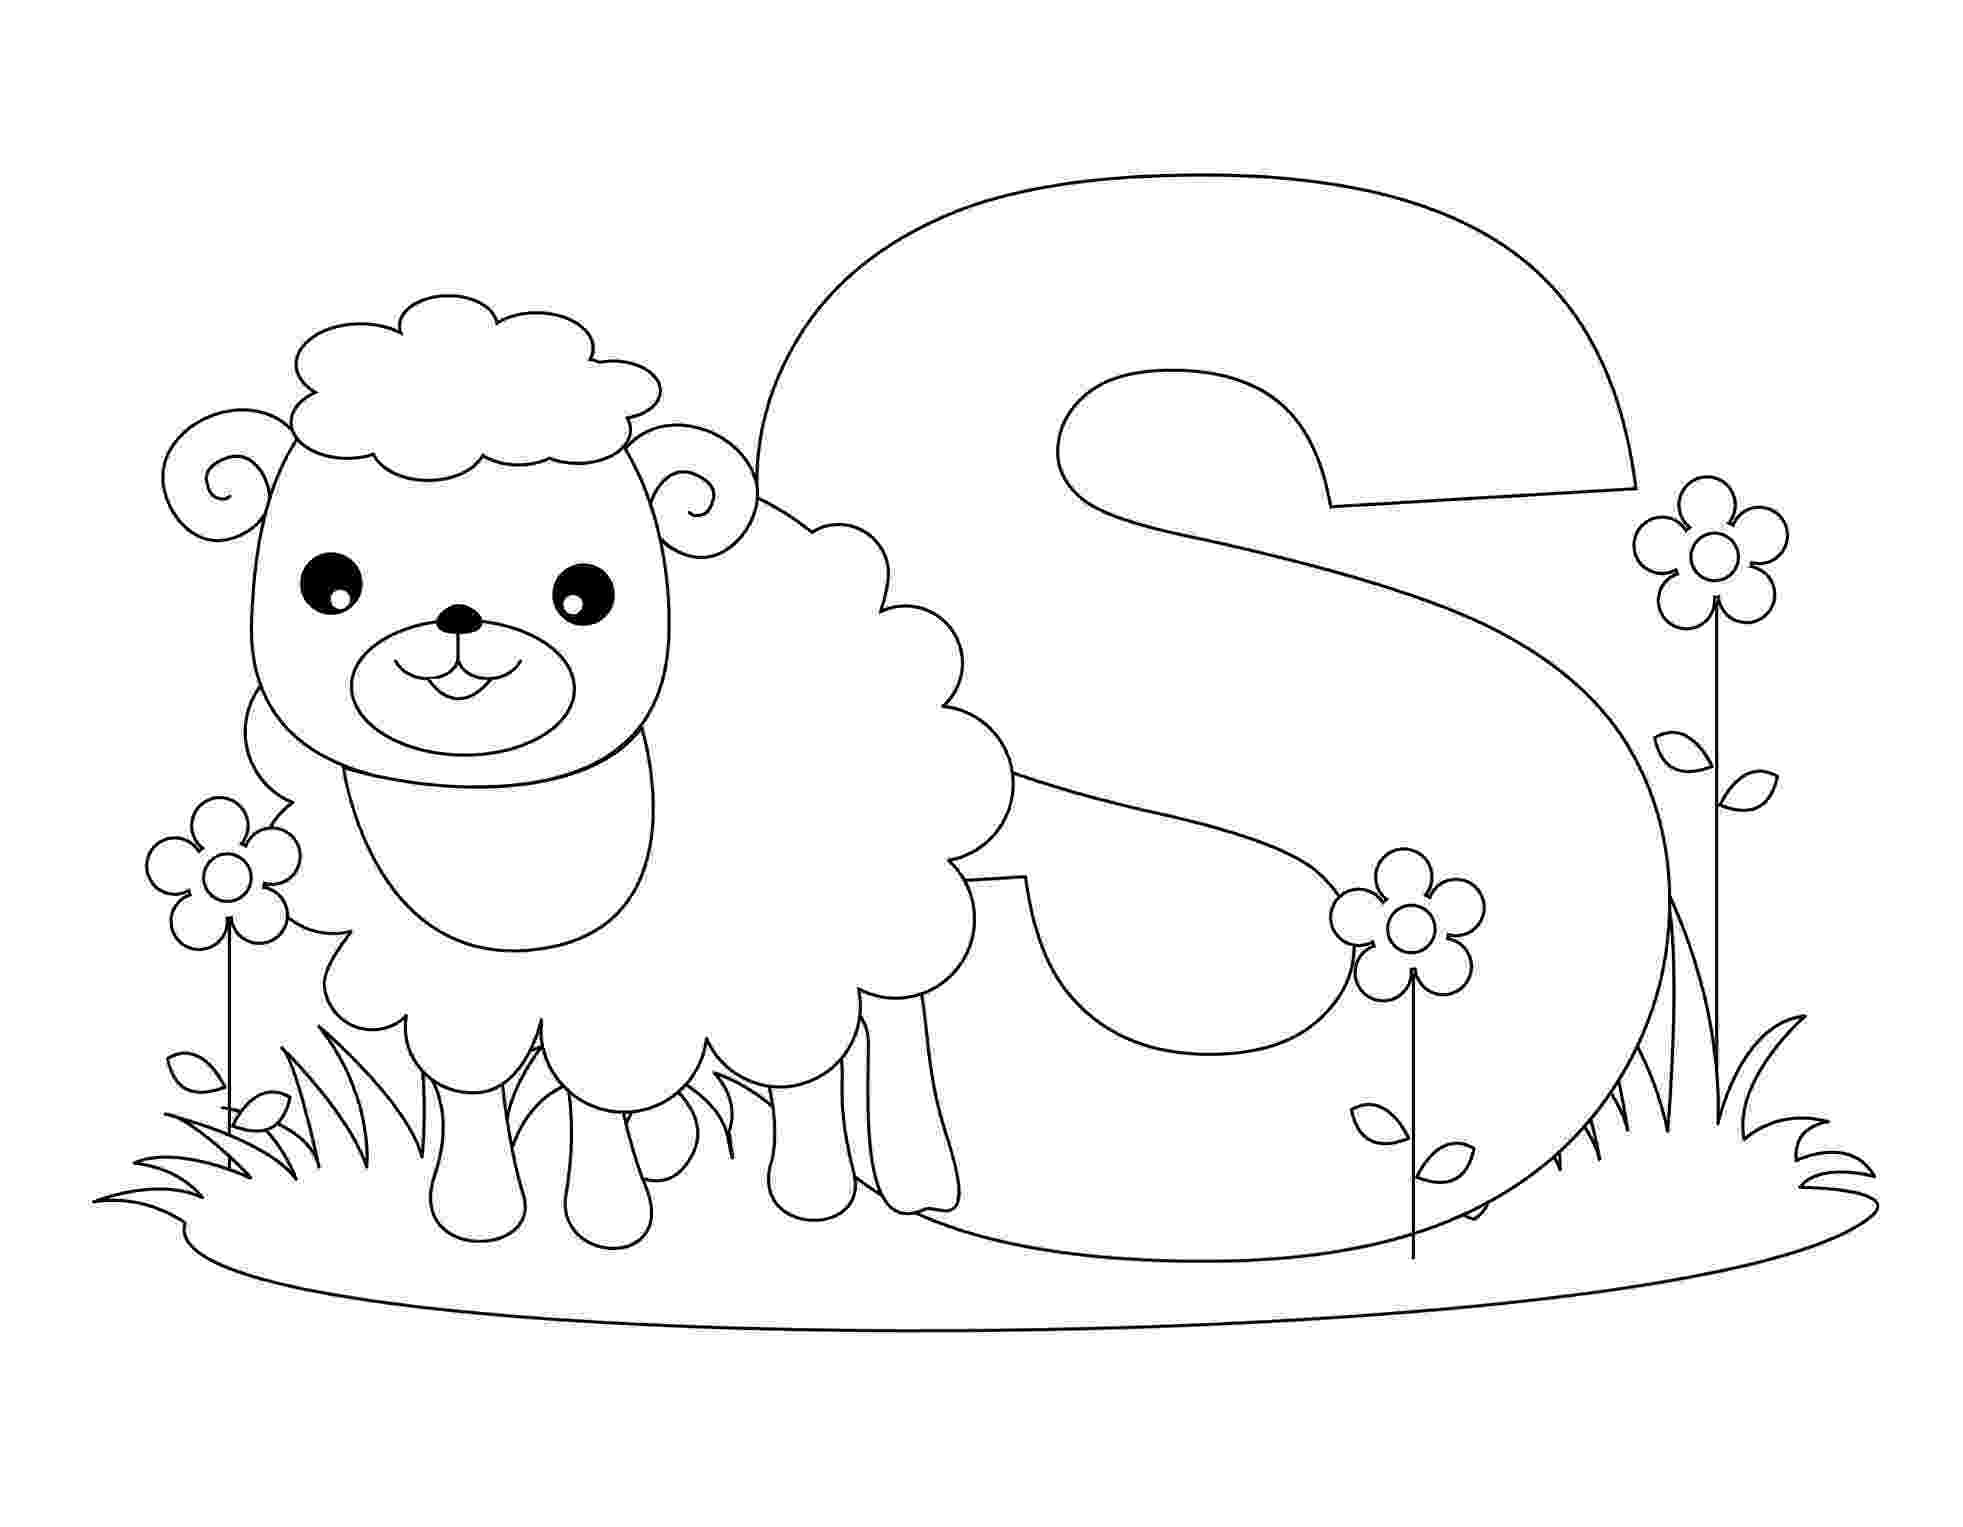 coloring pages of letters free printable alphabet coloring pages for kids best pages letters coloring of